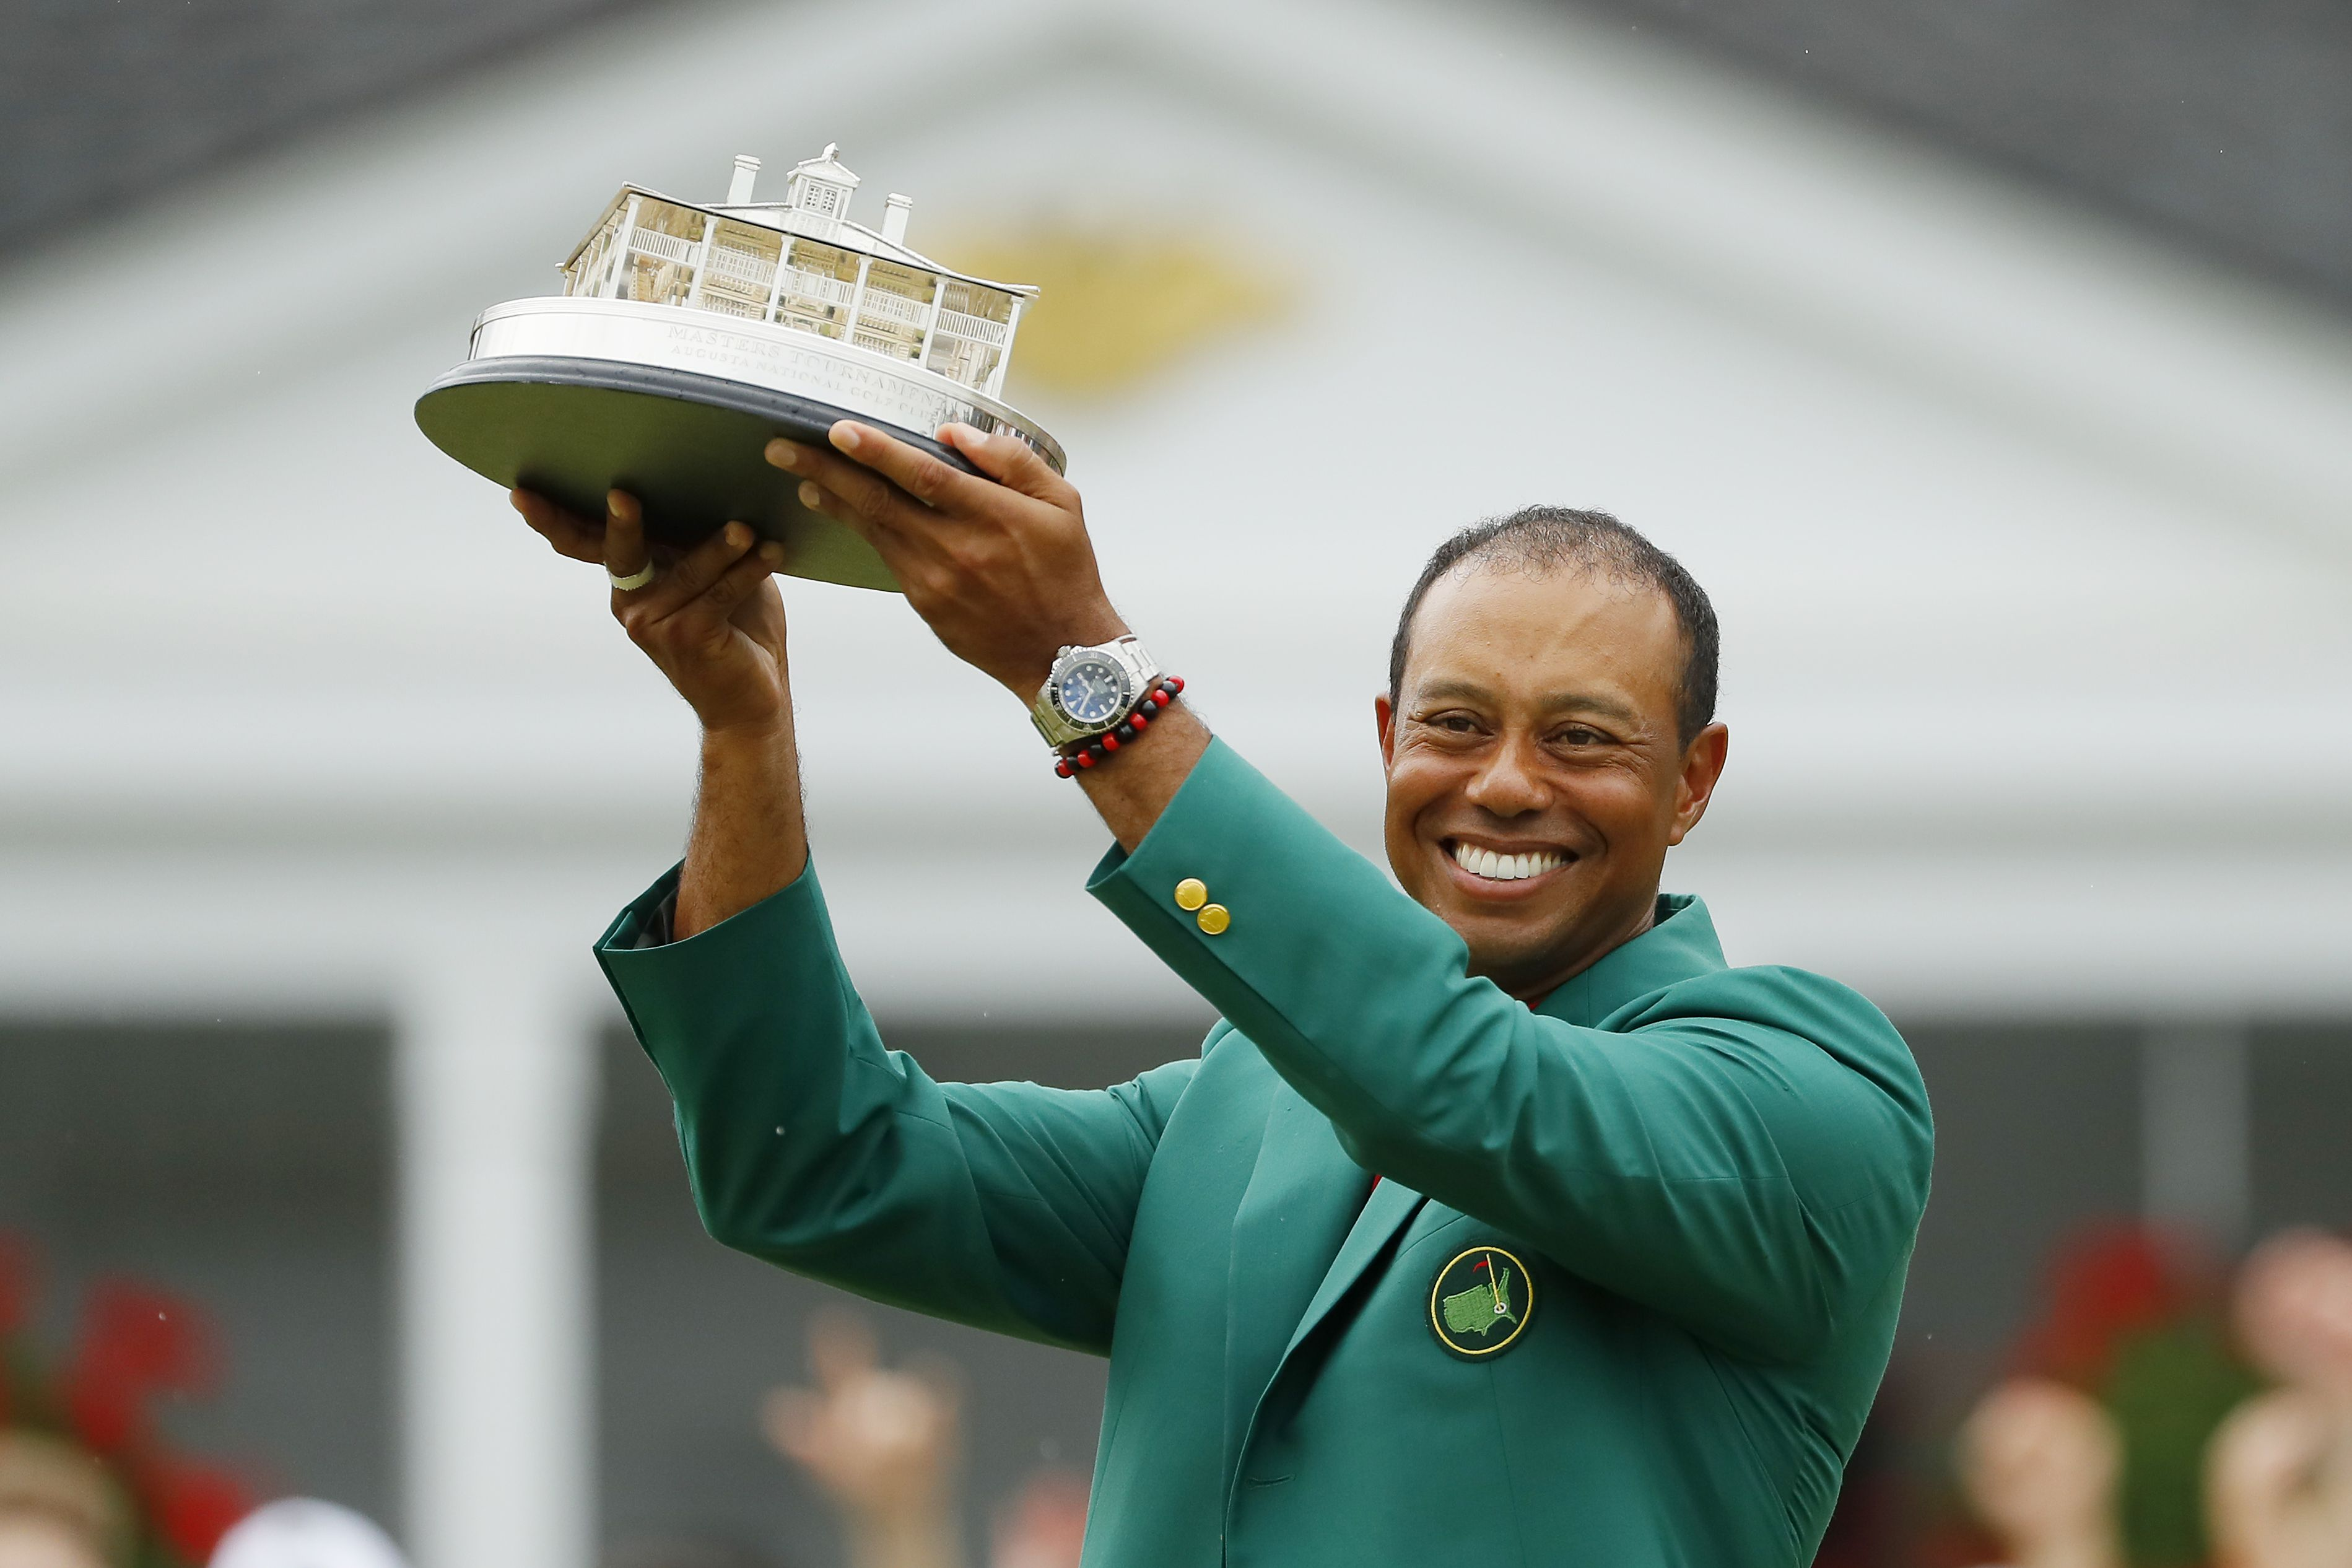 The Rolex Tiger Woods Wore Was Almost As Impressive As His Big Comeback